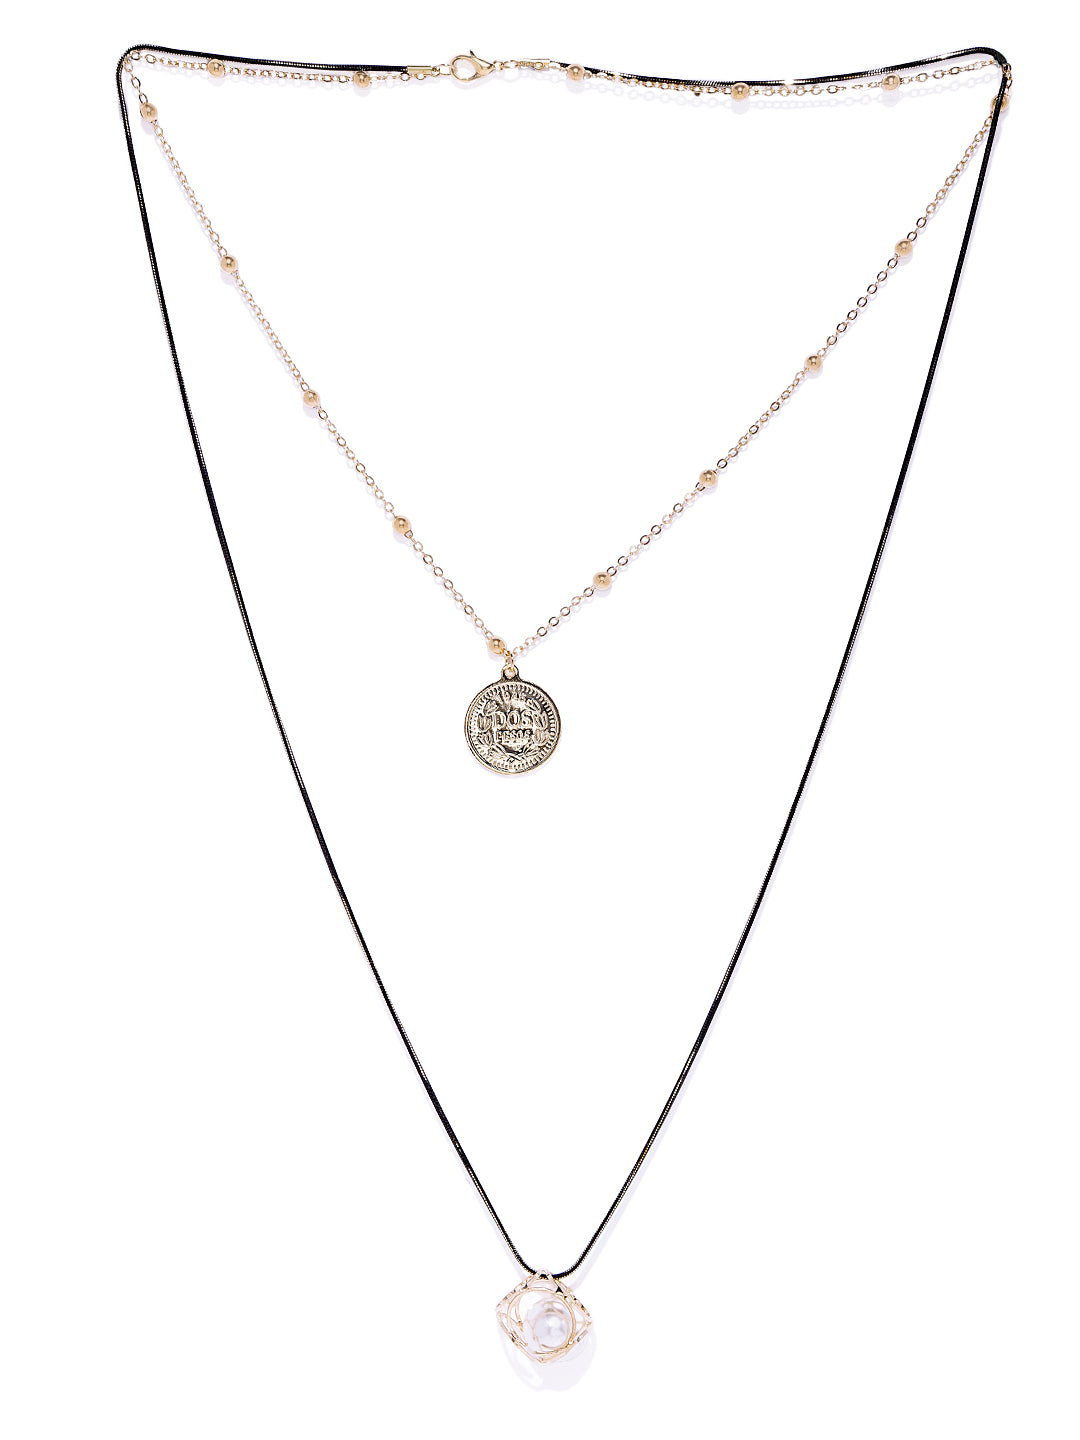 Roman Coin and Pearl Layered Necklace - ChicMela